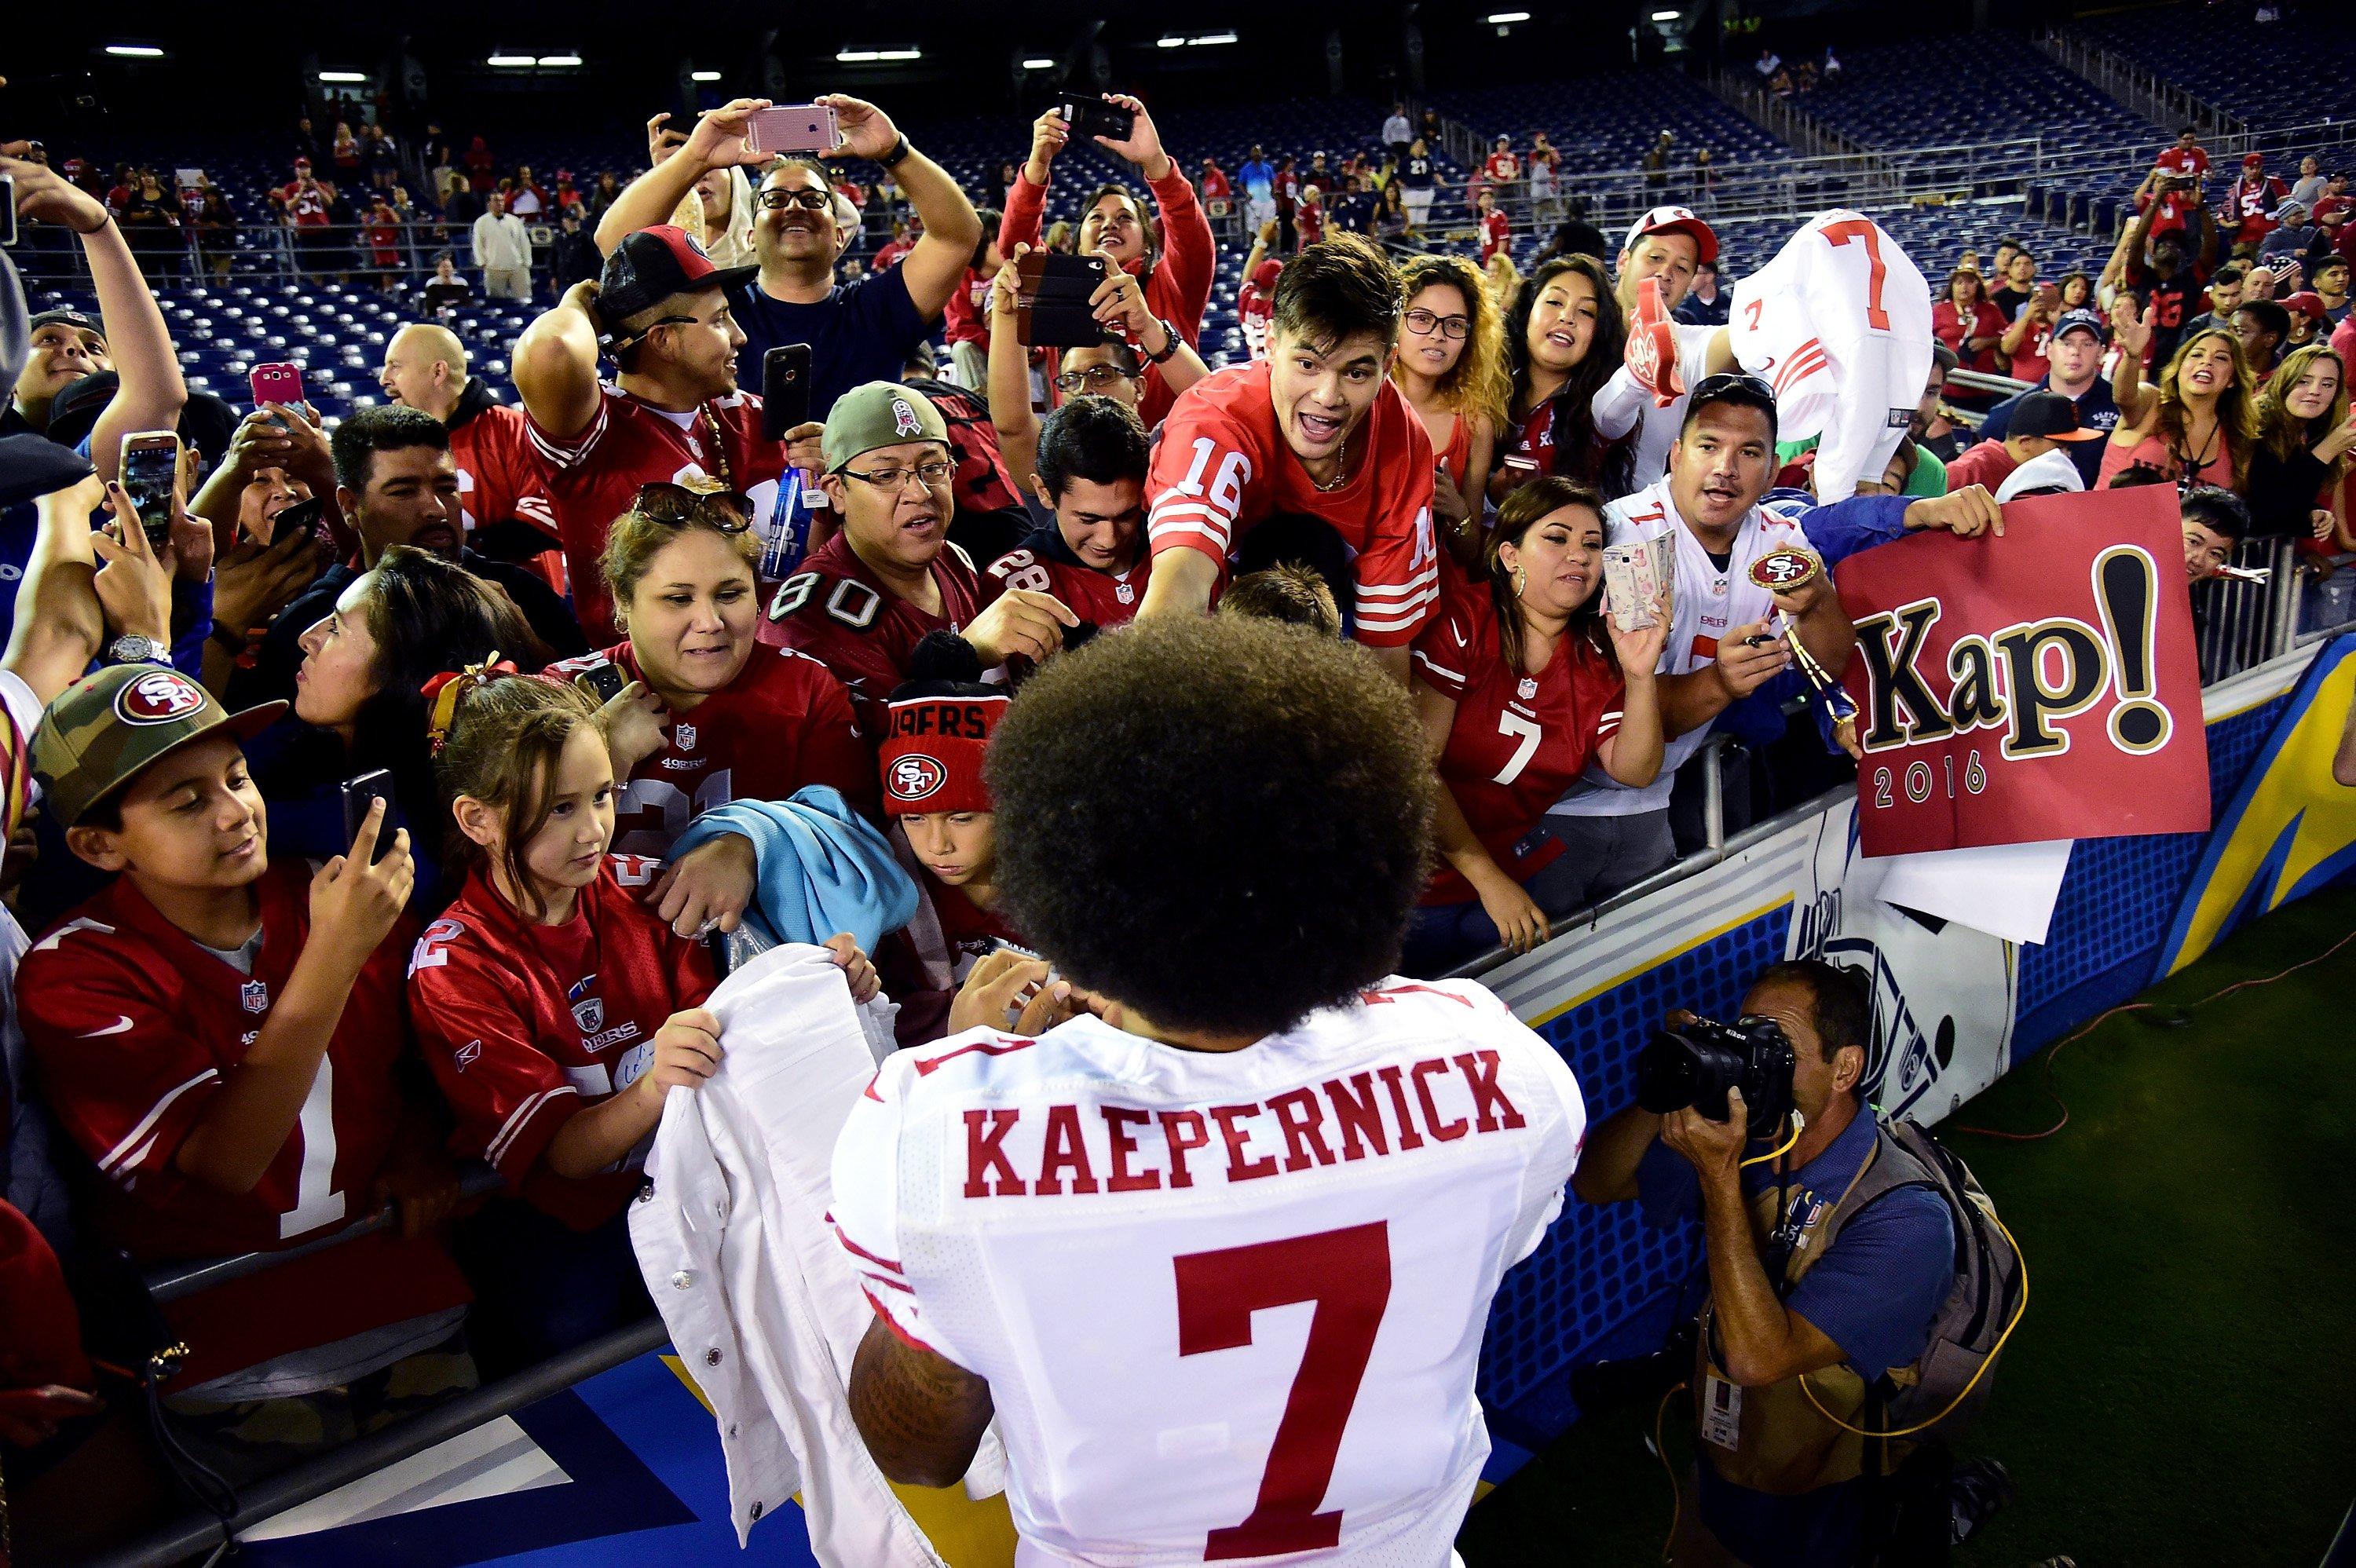 Colin Kaepernick of the San Francisco 49ers signs autographs for fans after a 31-21 win over the San Diego Chargers during a preseason game at Qualcomm Stadium on Sept. 1, 2016 in San Diego.